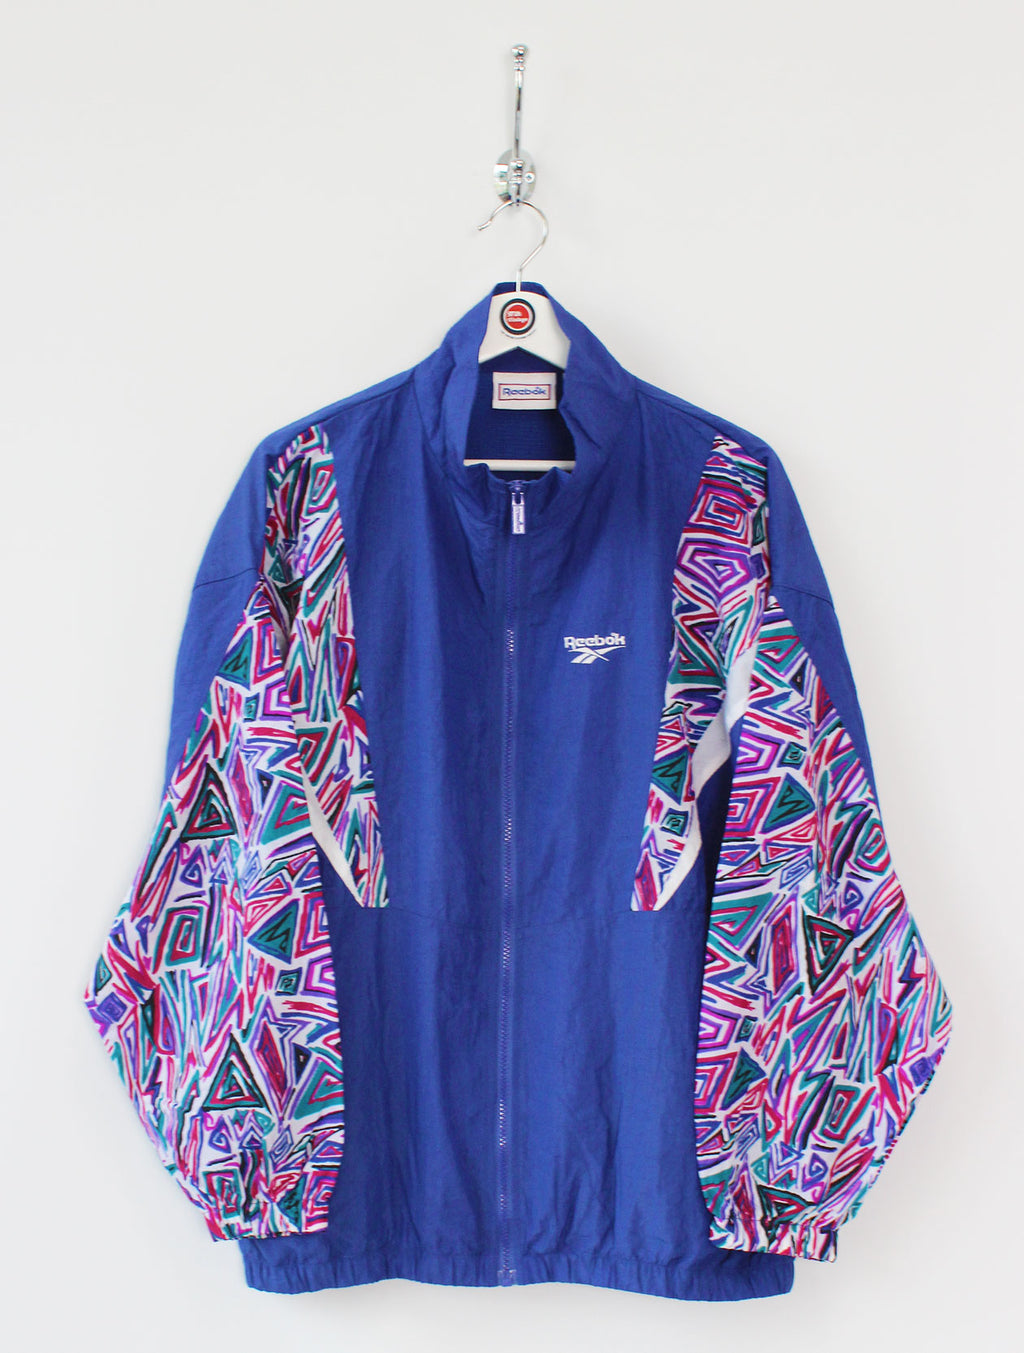 Reebok Shell Suit Jacket (L)